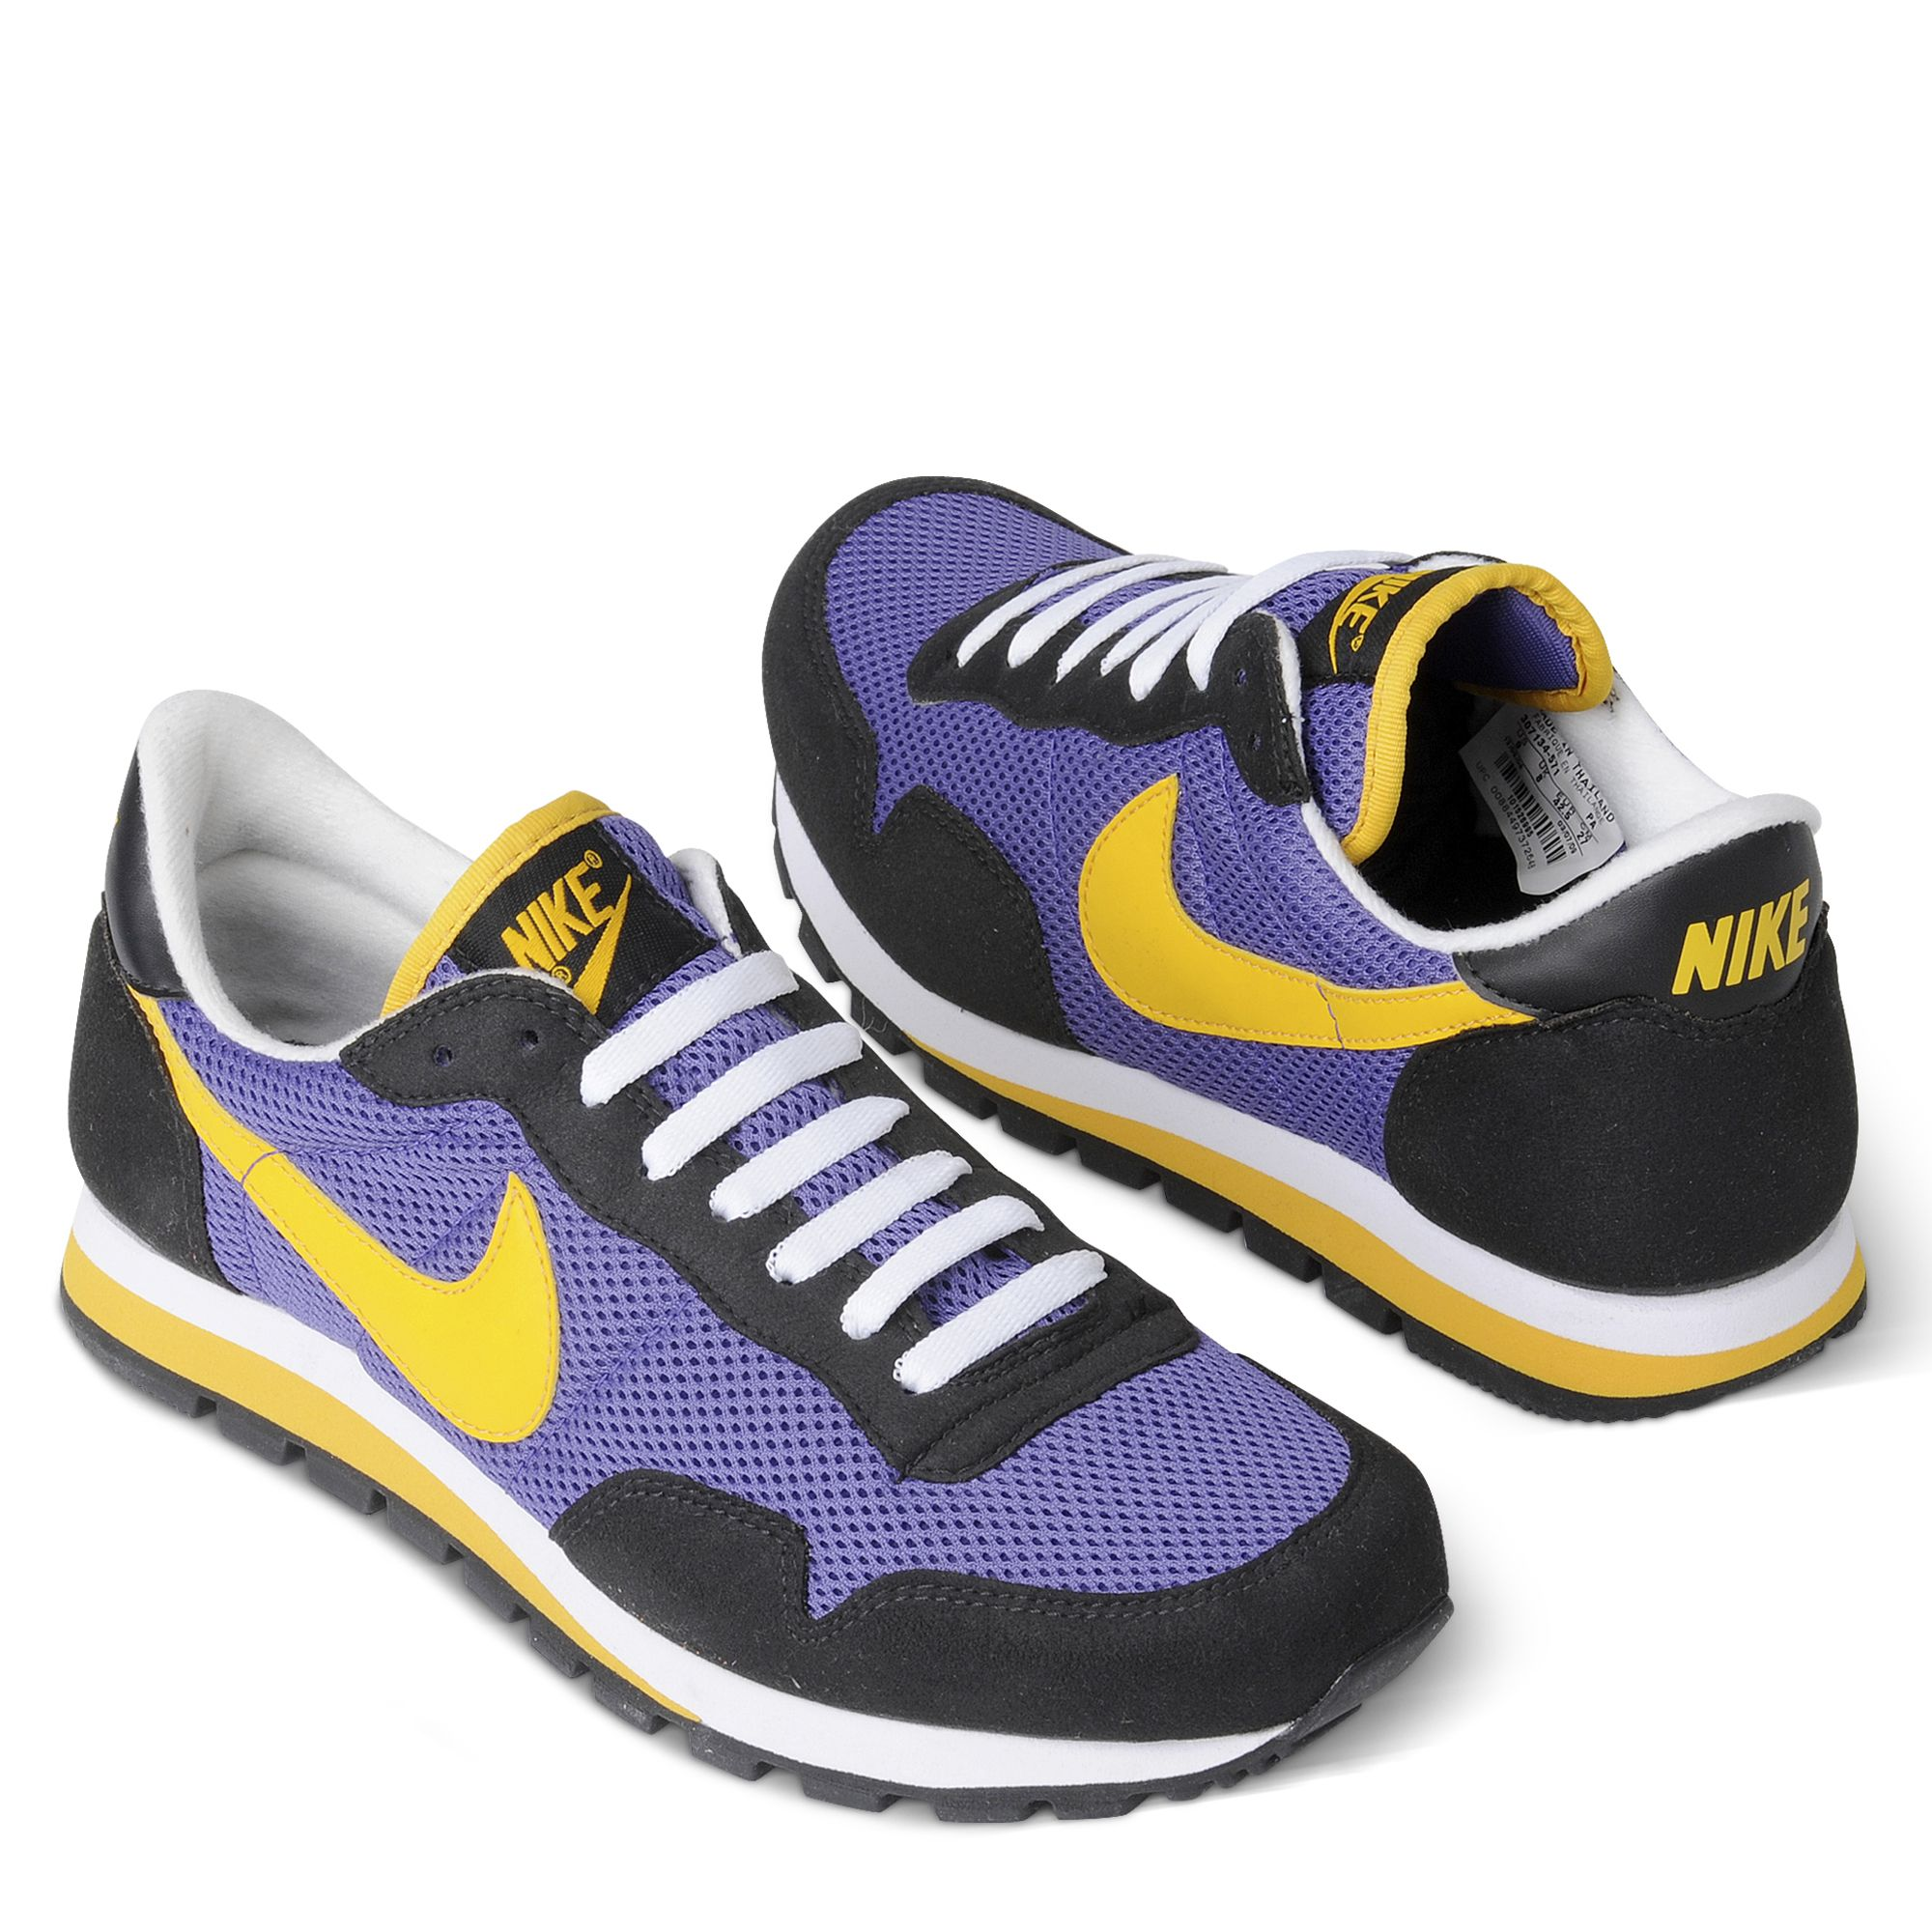 Metro Shoes - Buy latest pair of men shoes, ladies footwear, kids shoes online in india at best price on our online shoes store. Avail COD Free Shipping 30 Days Return.